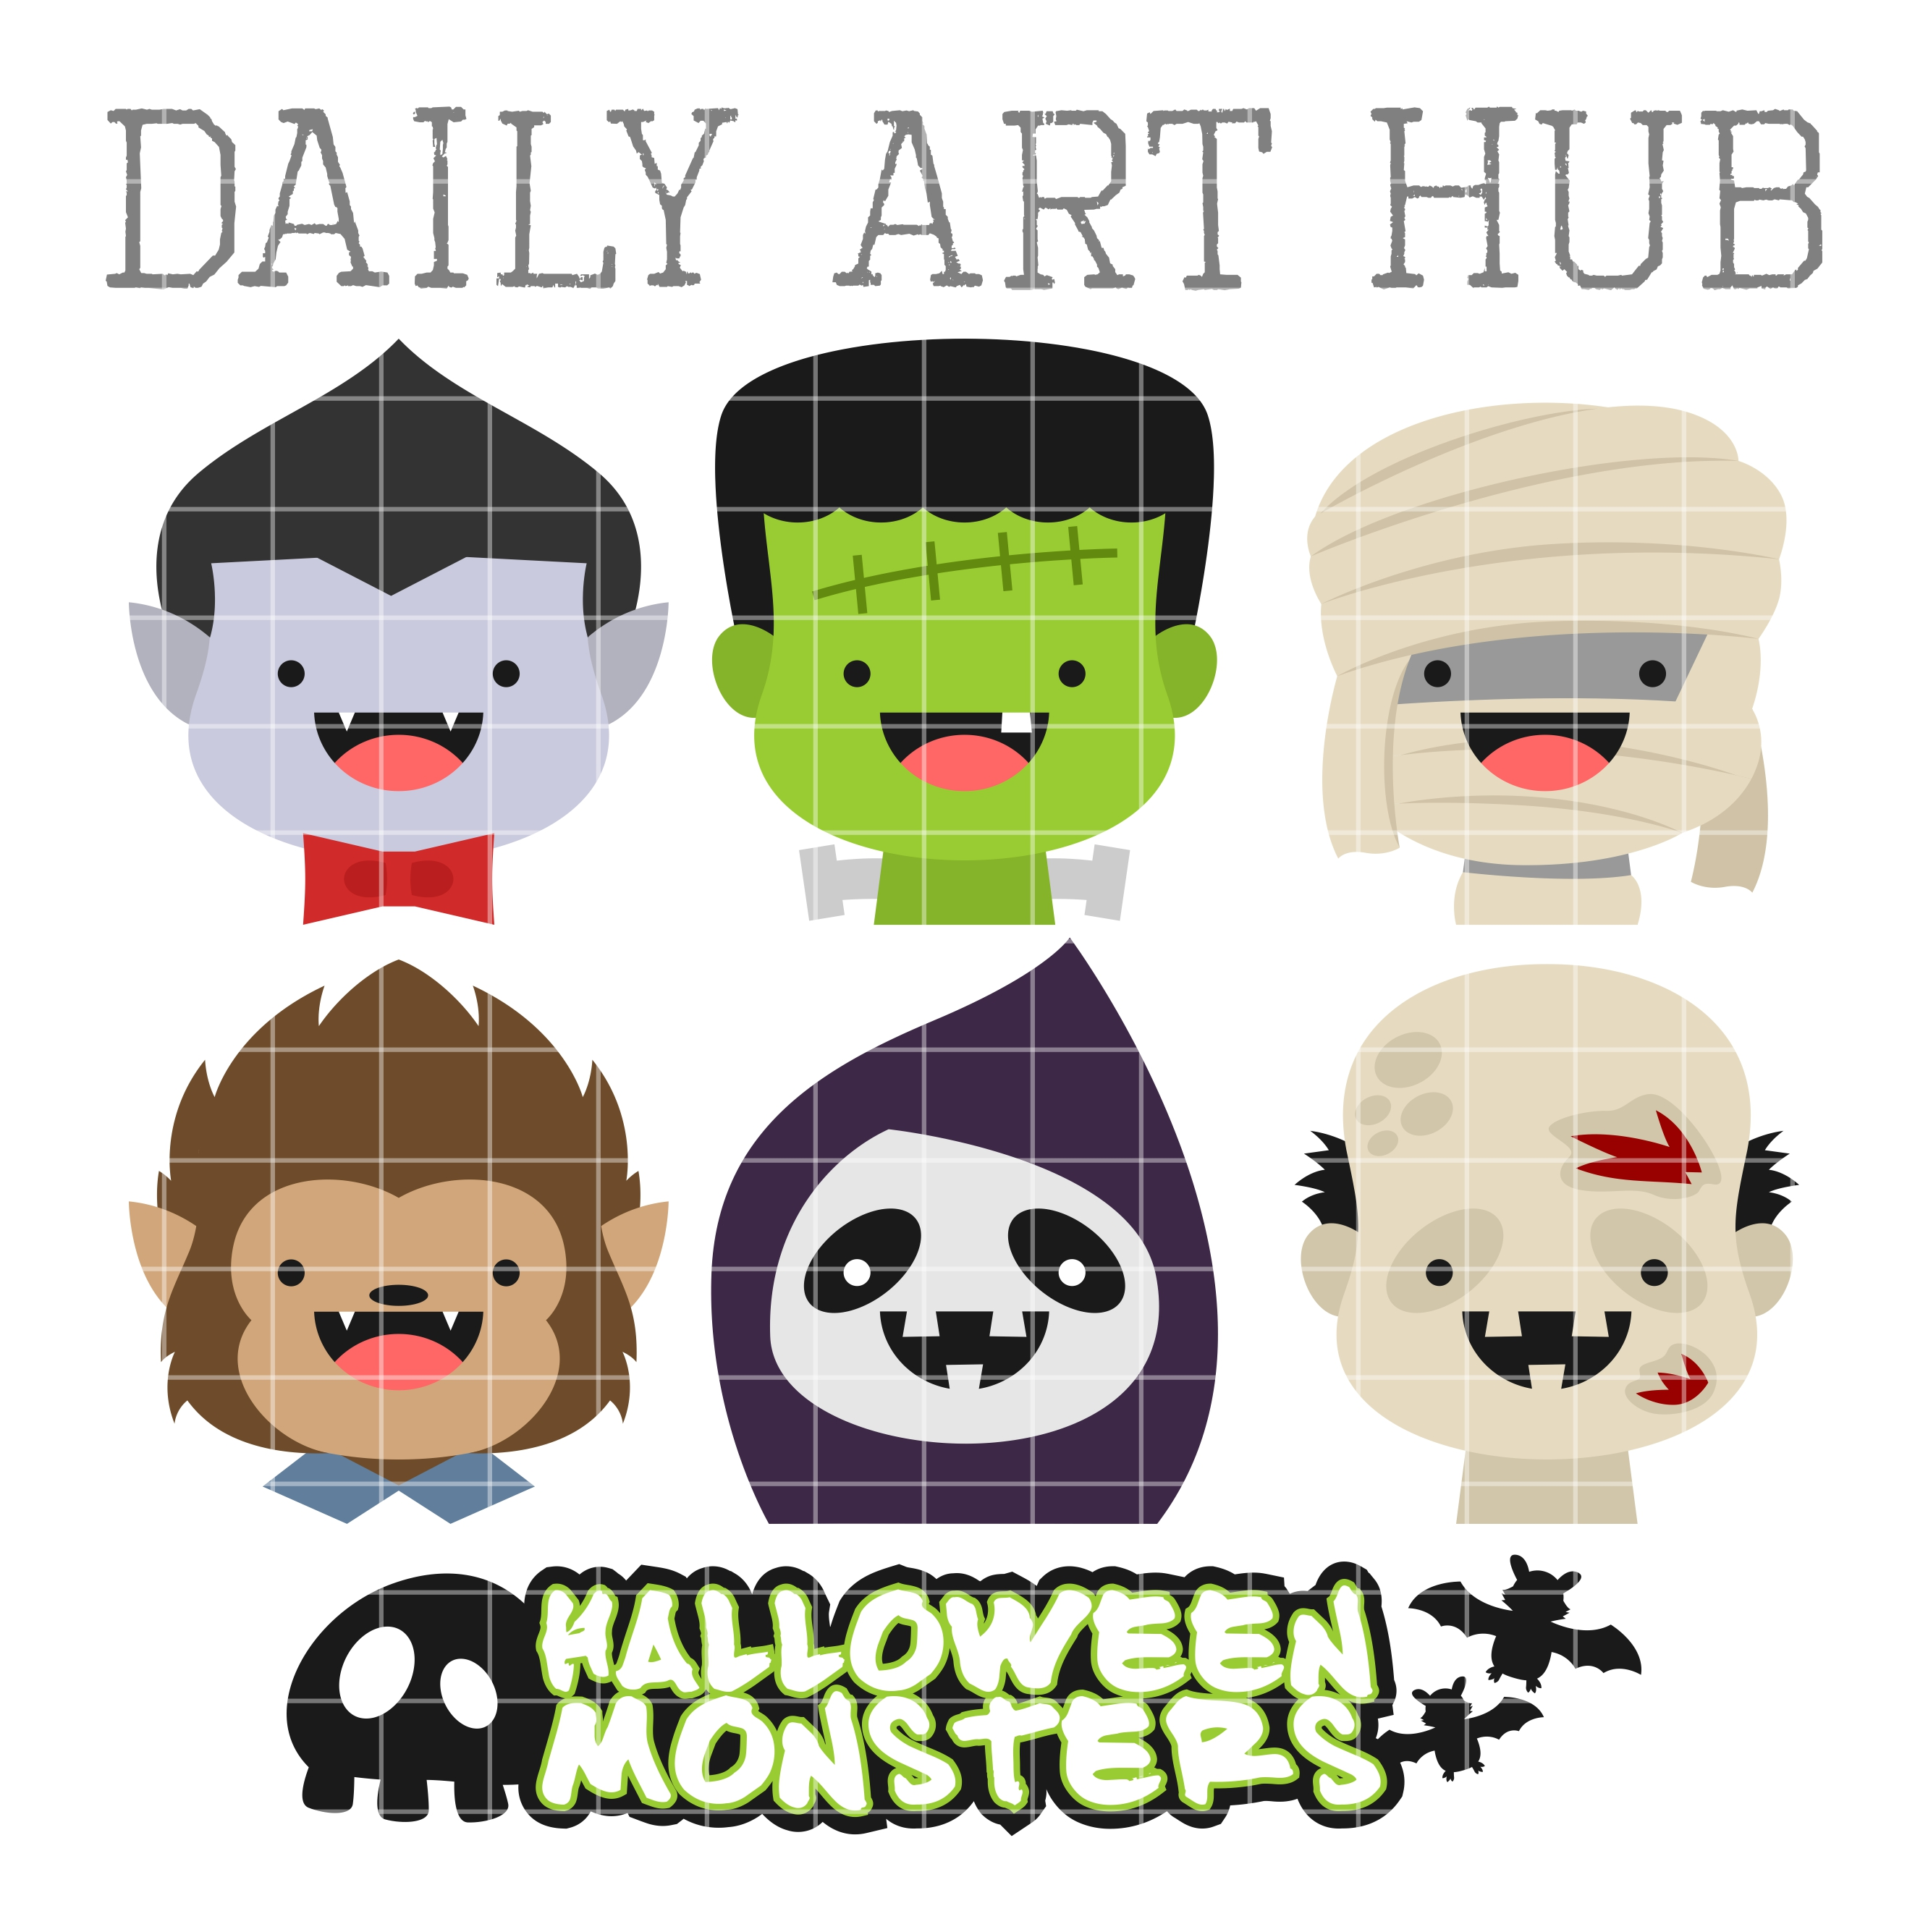 Cute Halloween Monster Heads Clip Art Set | Daily Art Hub - Free ...